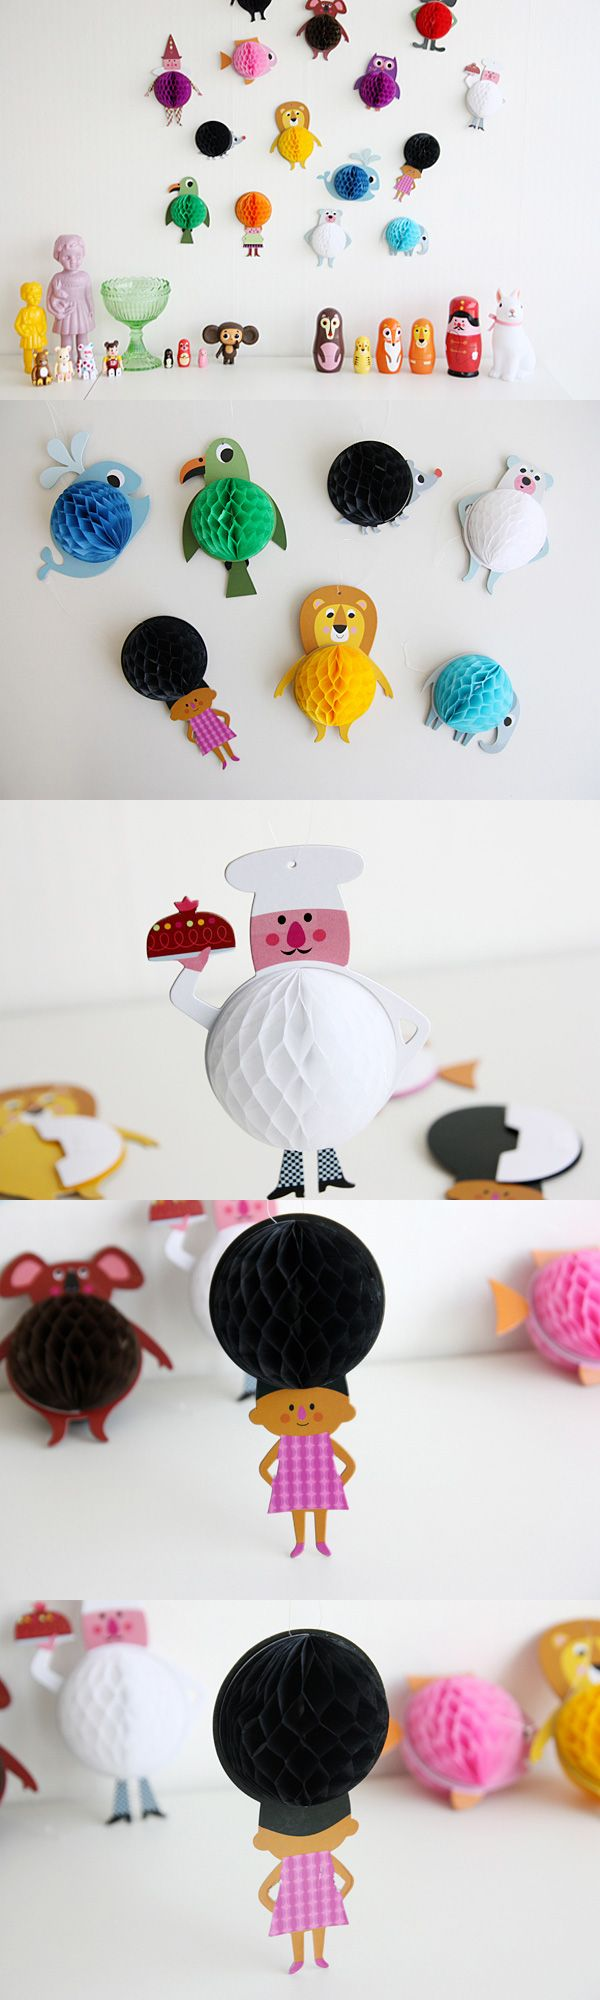 [텐바이텐] ingela Honeycomb Parade 모빌(3type).  Desire for Design  Pinterest ...